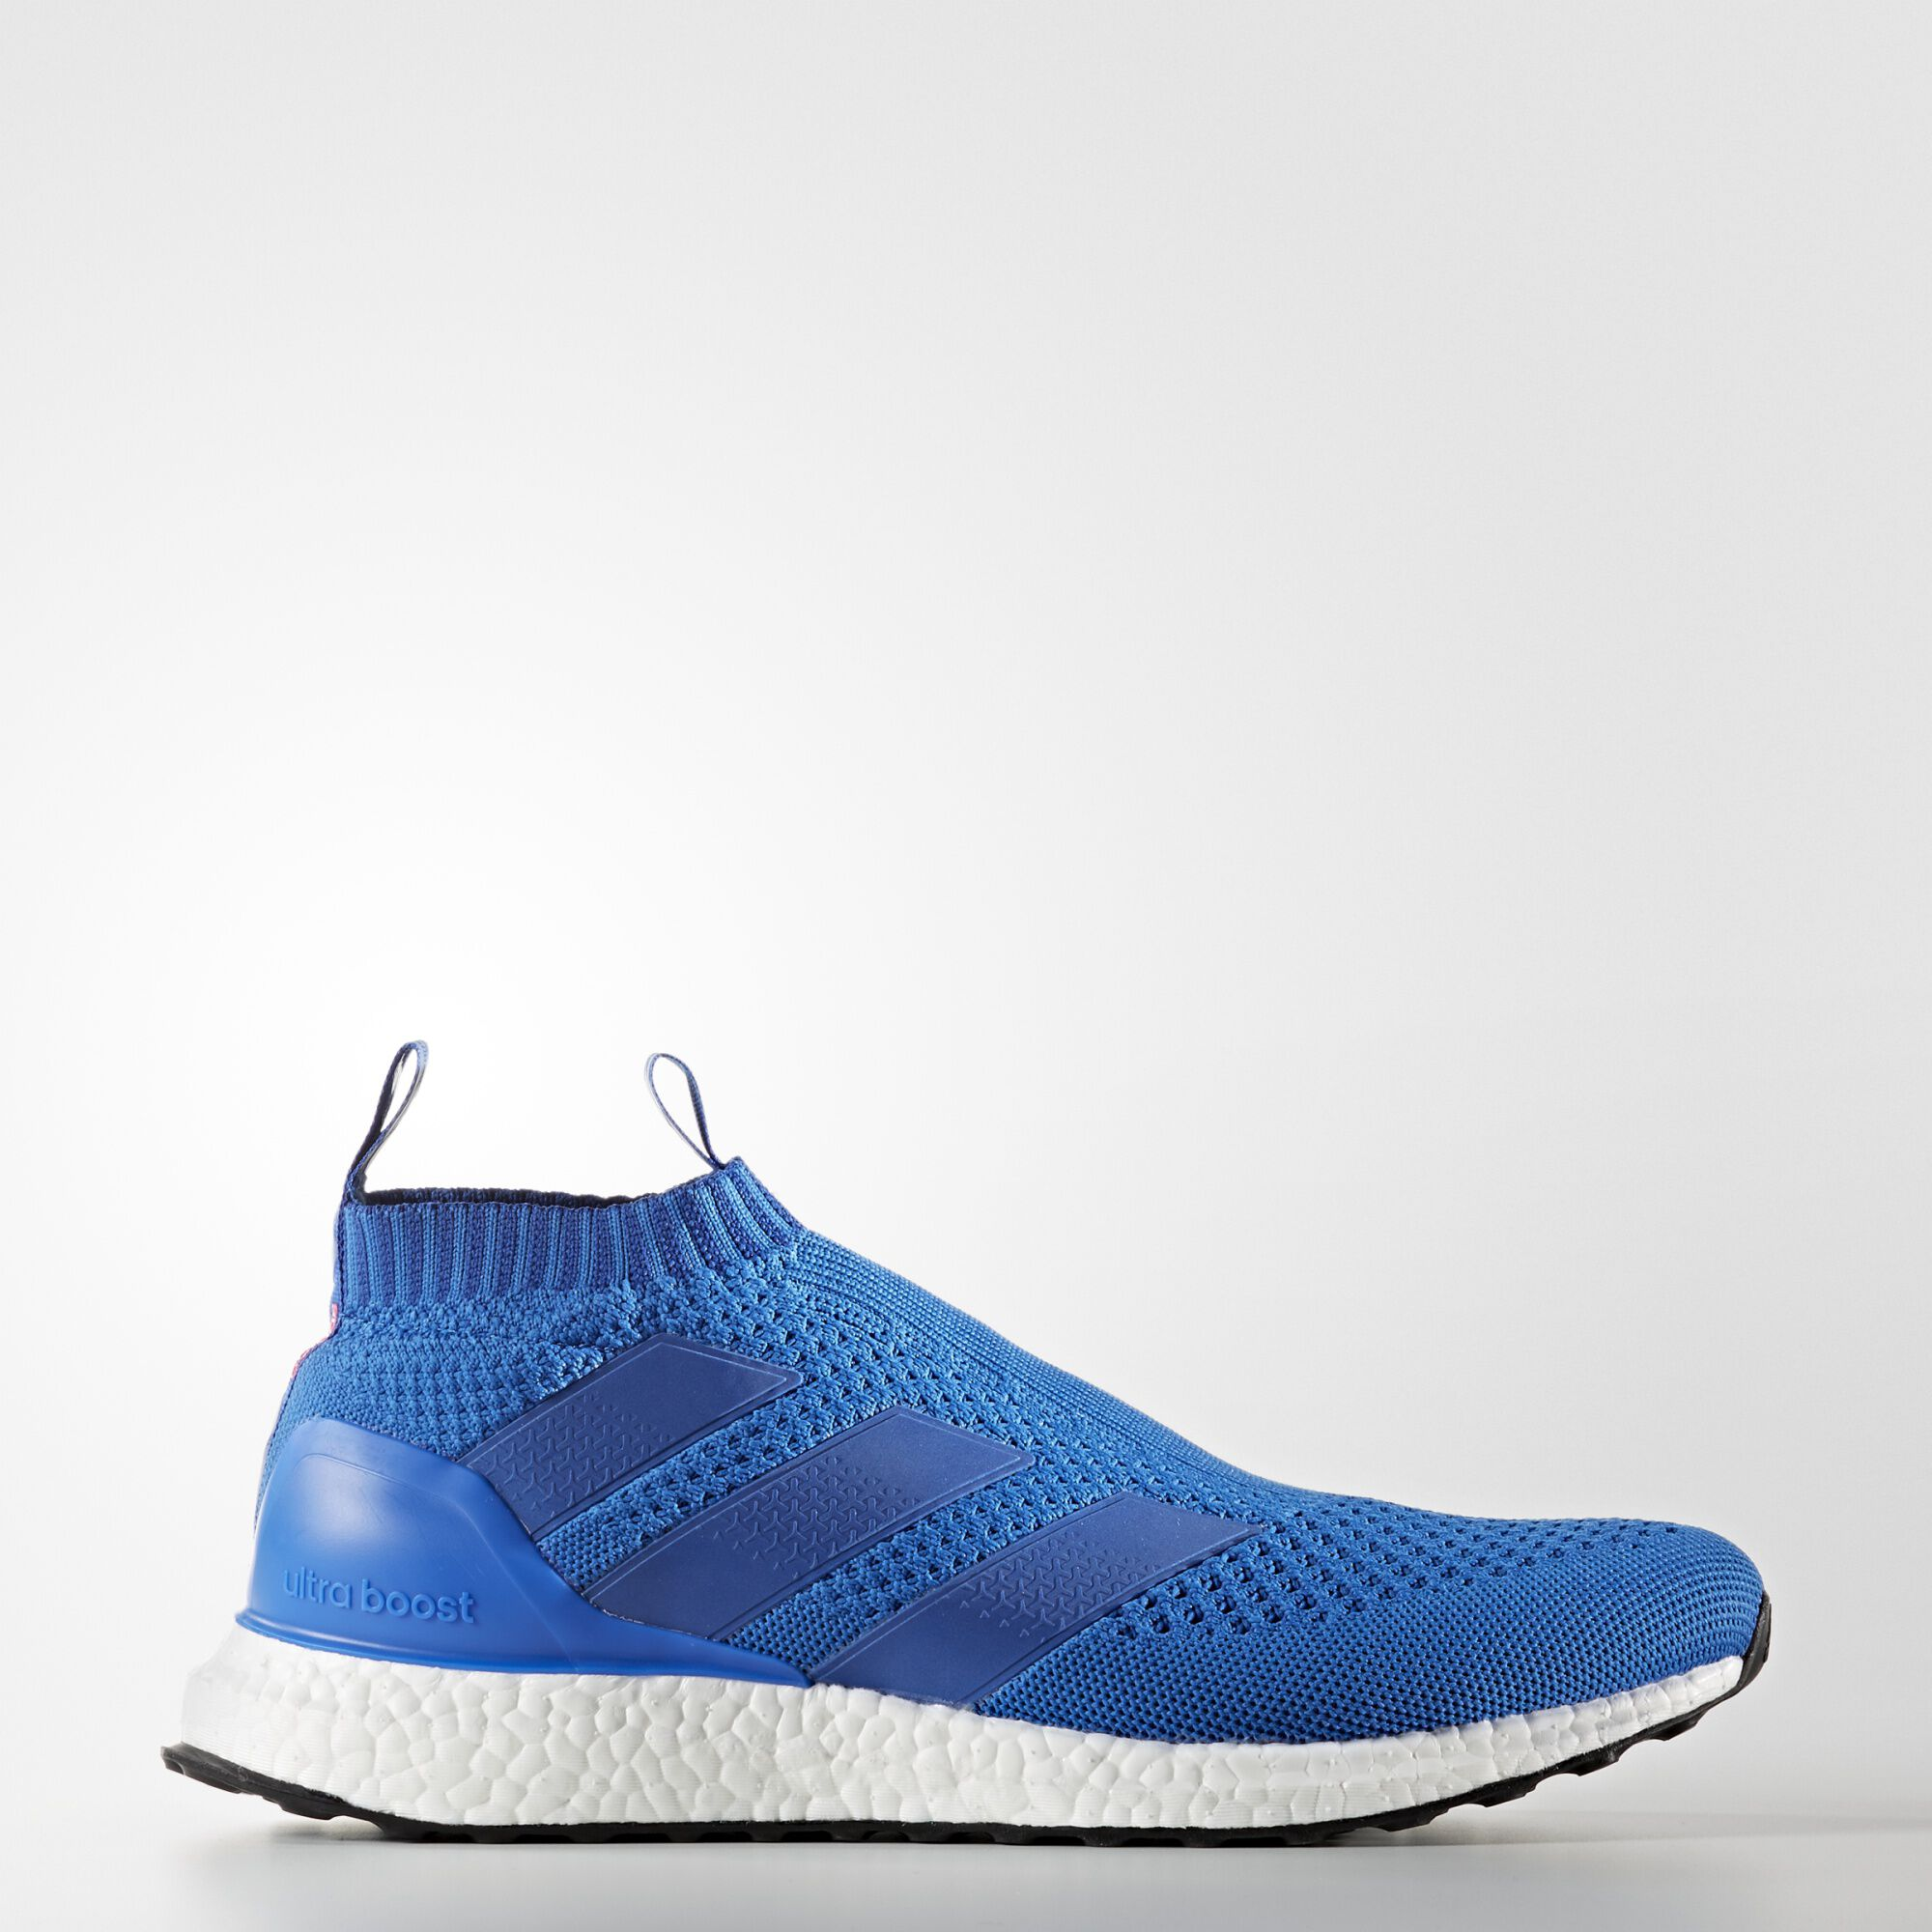 3893bd87 adidas: Ace 16+ Purecontrol Ultra Boost CW: Blue Blast/White SKU: BY9090  Release: 02.01.17. Retail: $200